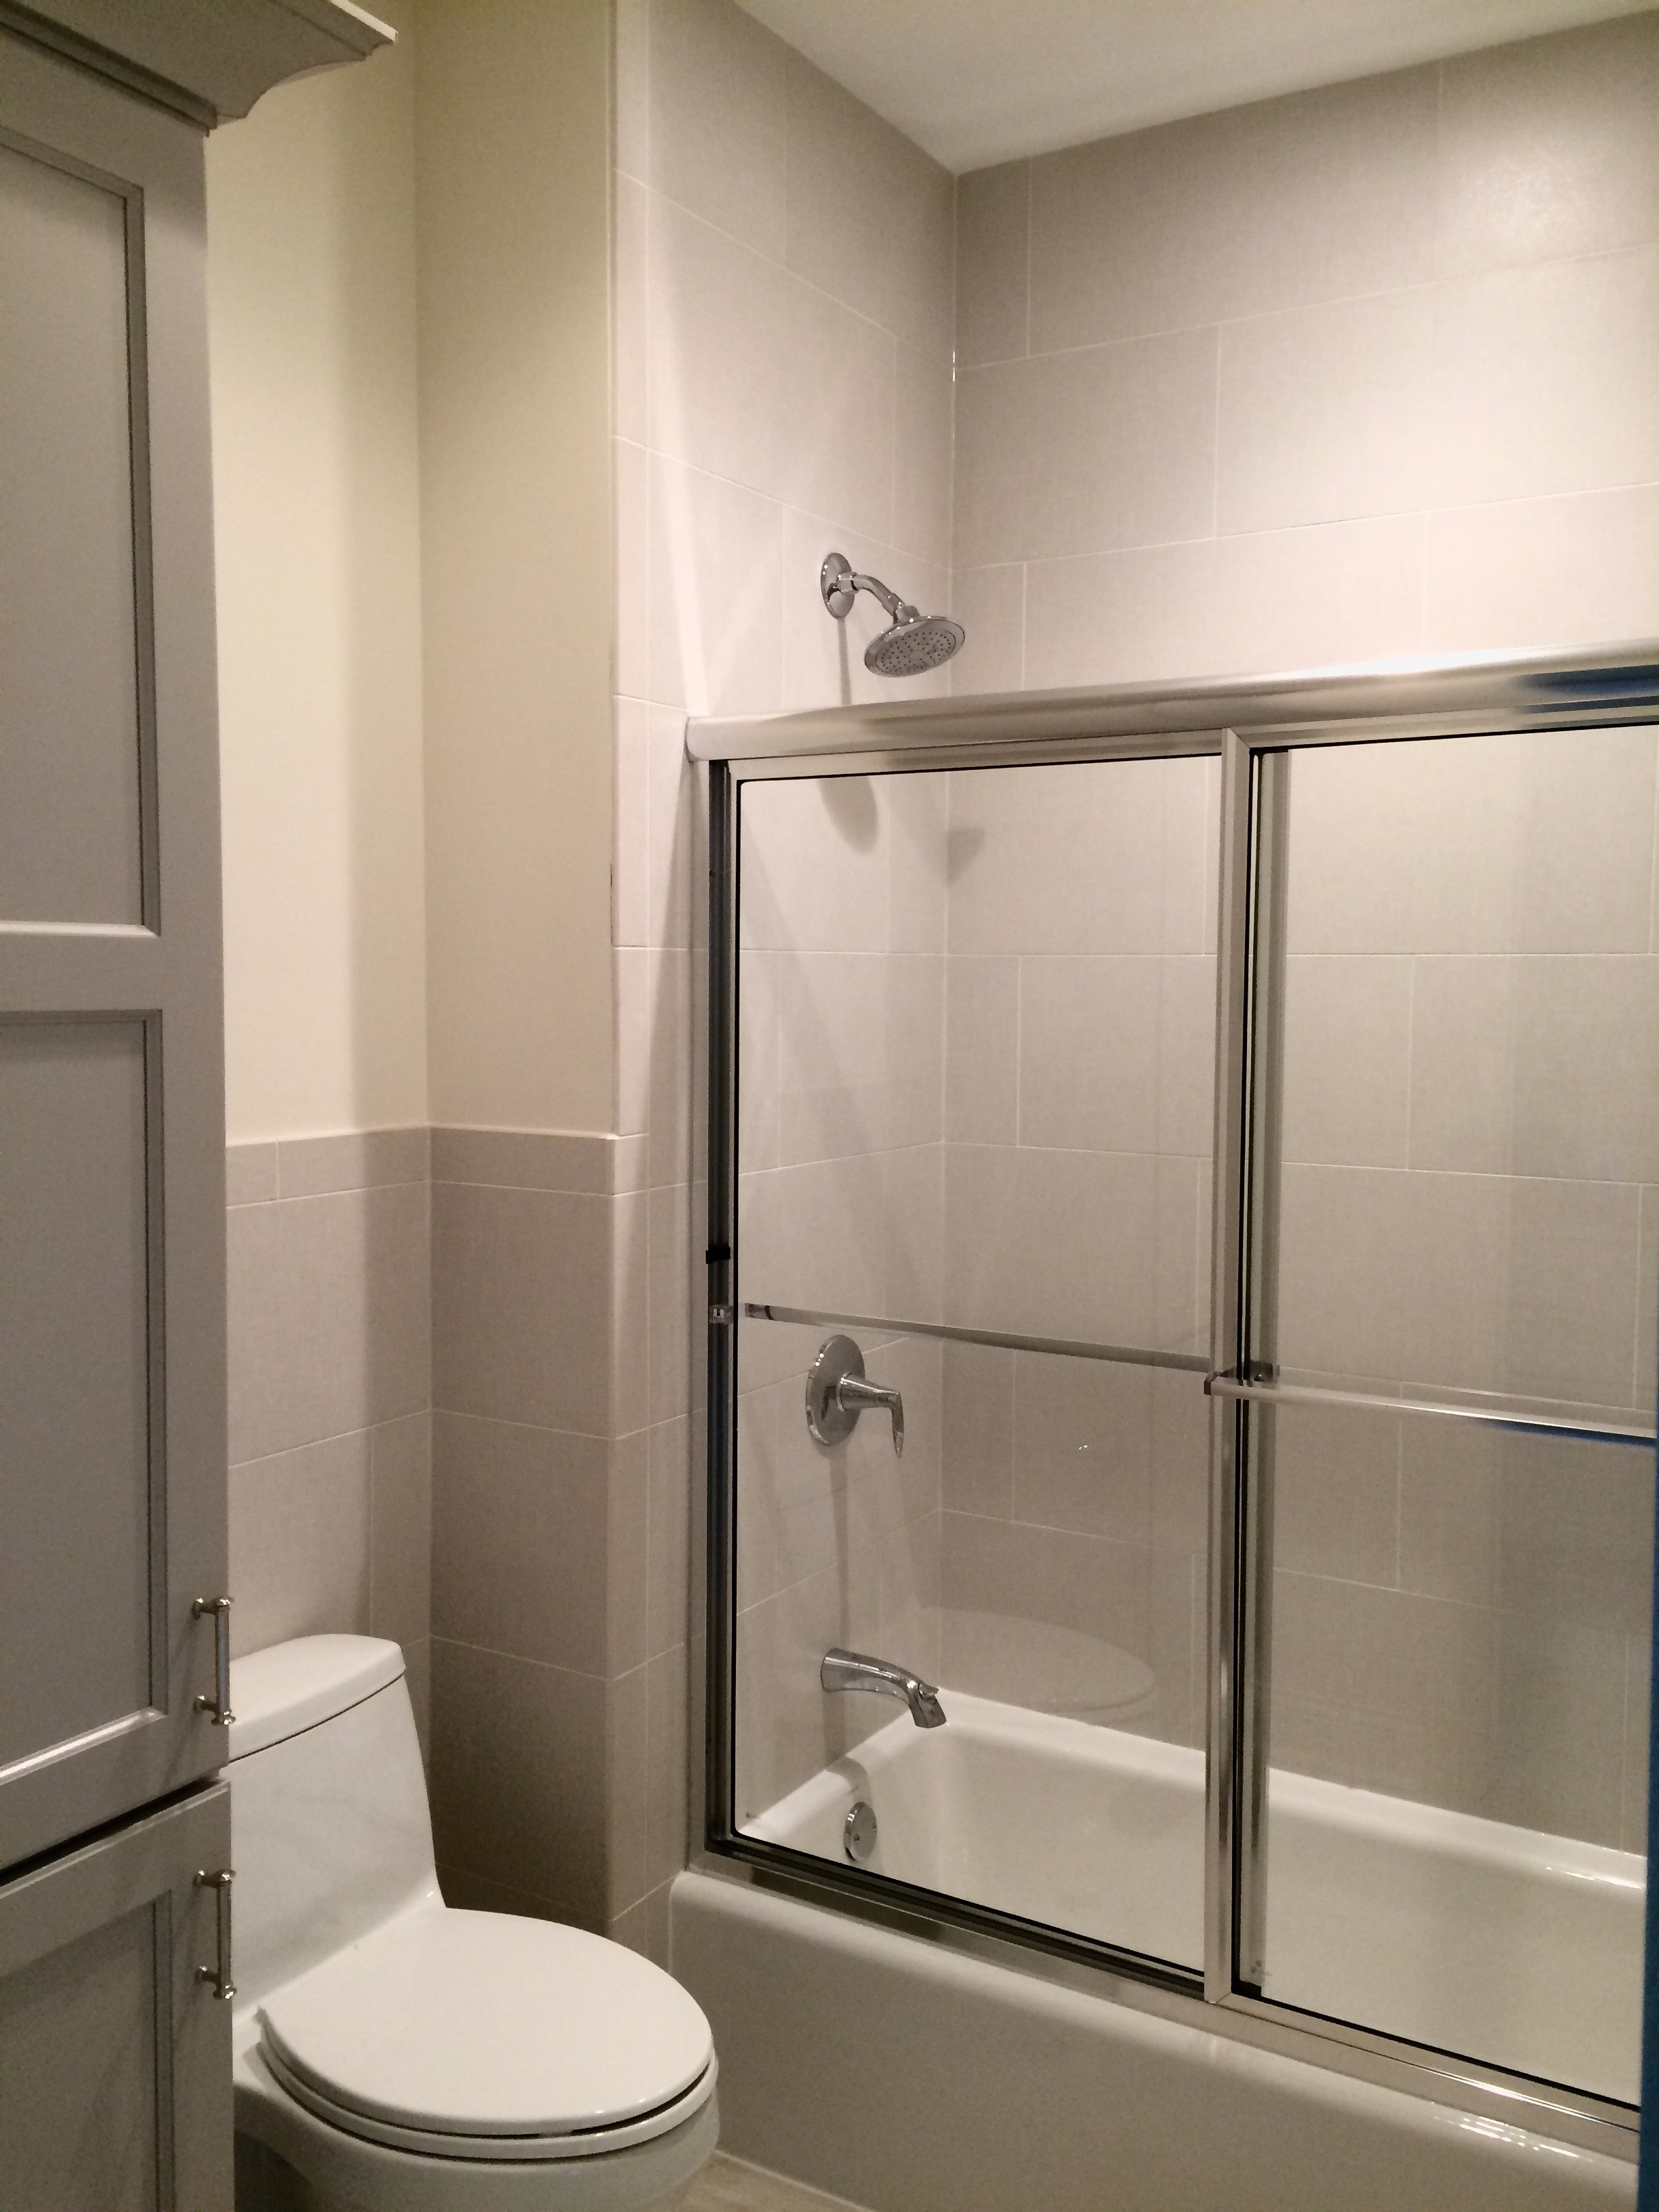 SHARED BATHROOM REMODEL WITH TALL LINEN CLOSET IN GENEVA IL